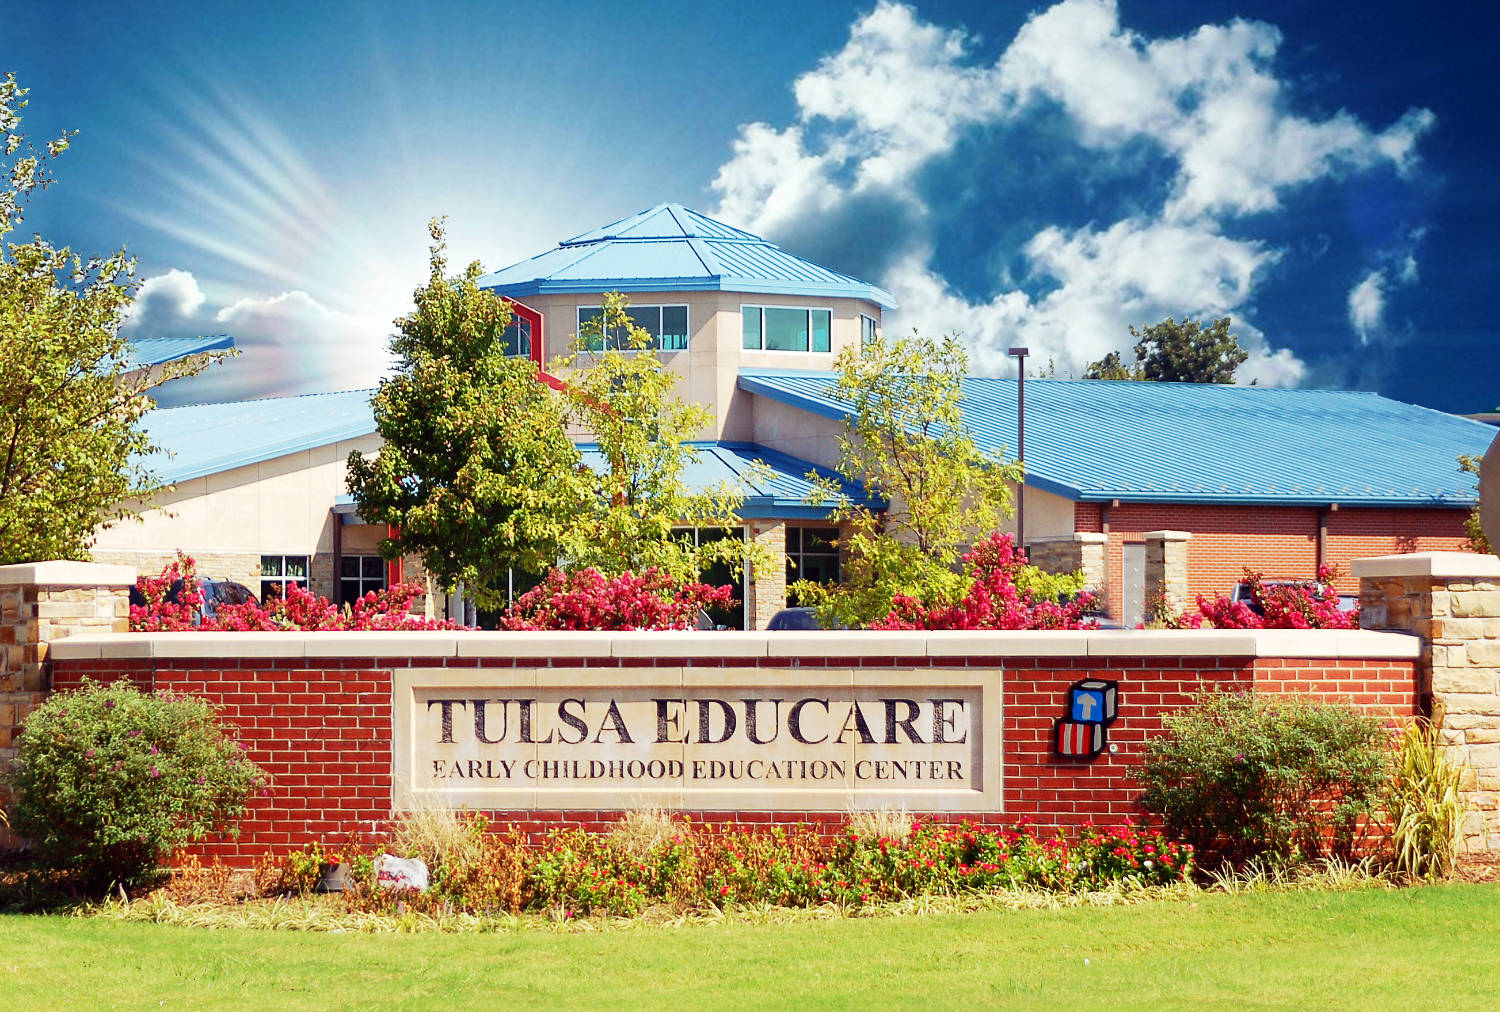 Our Schools Tulsa Educare